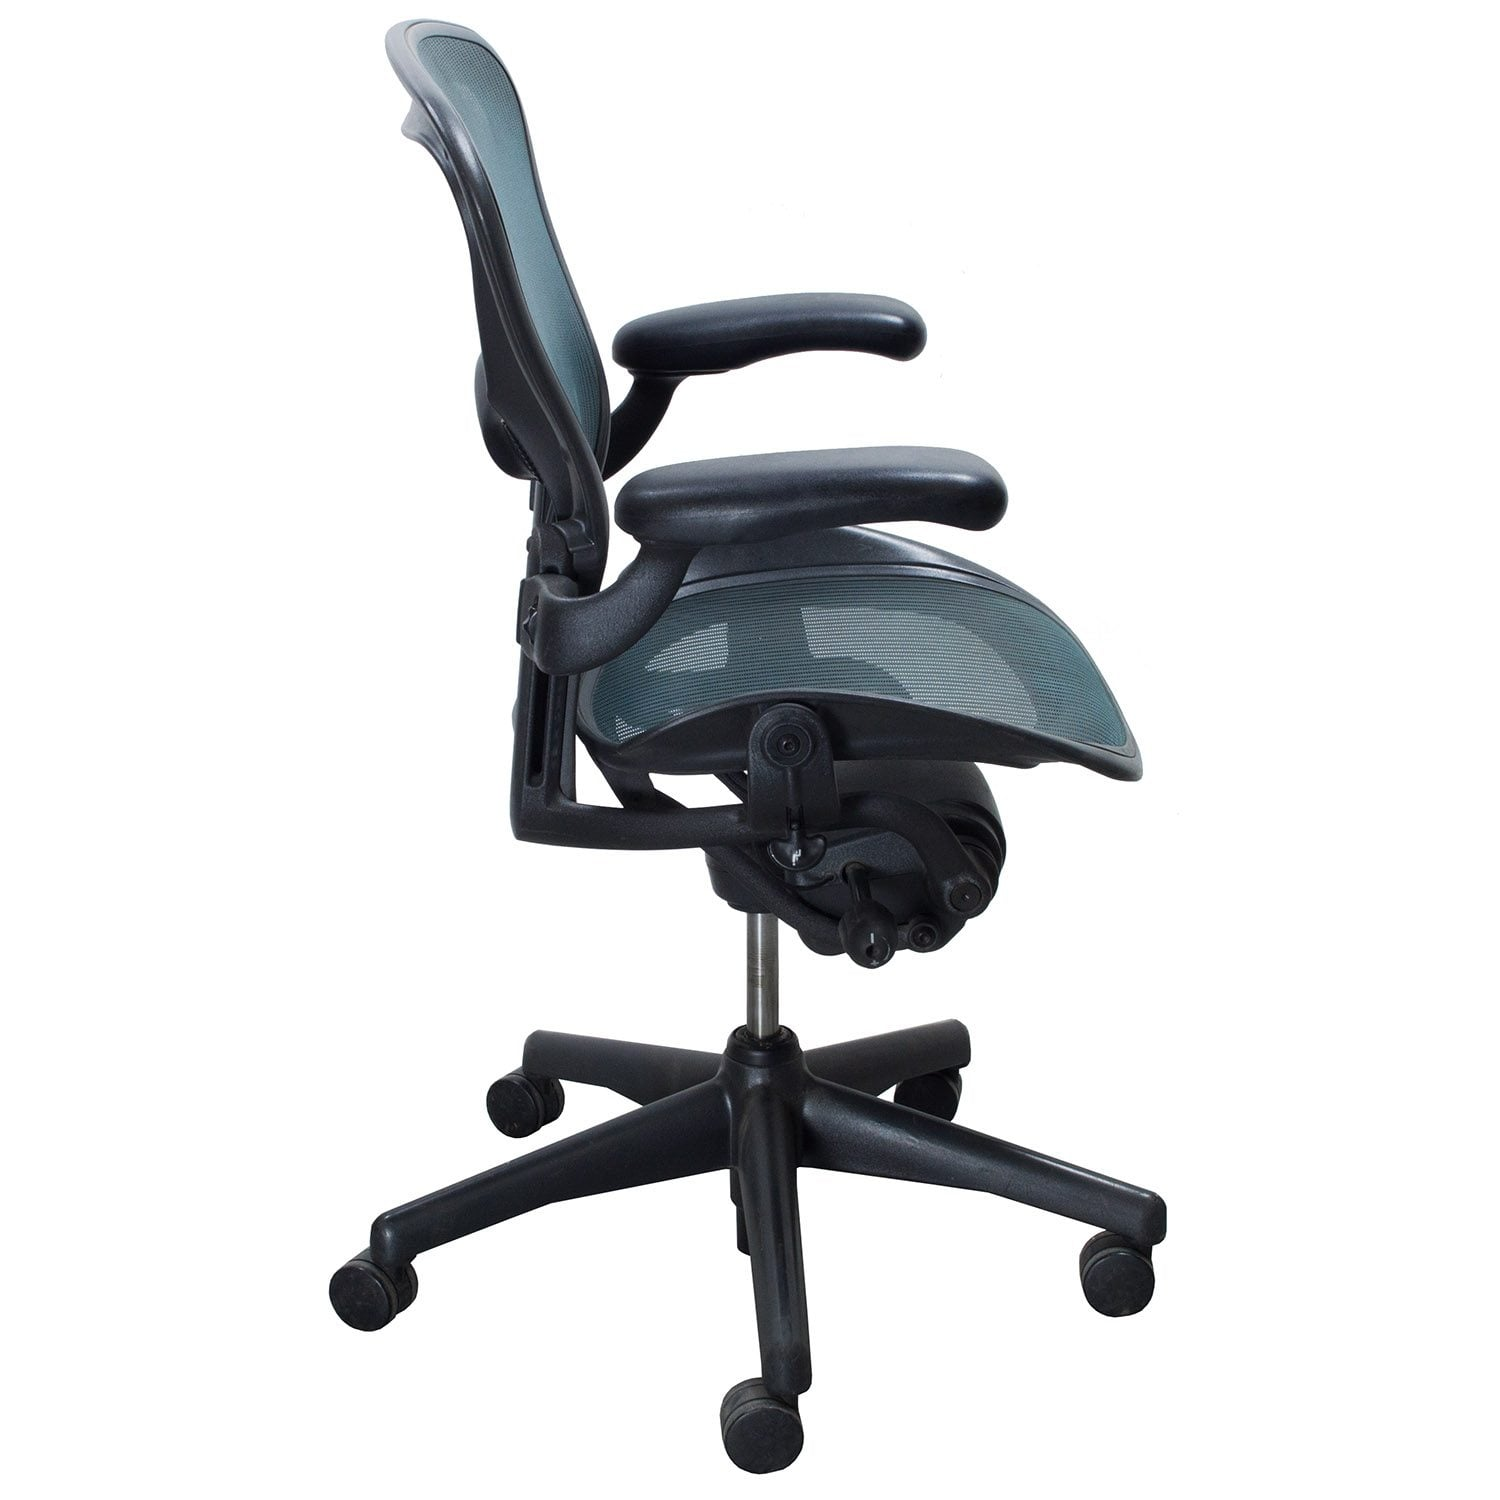 aeron chair sale upholstered wingback chairs herman miller used size b task tourmaline